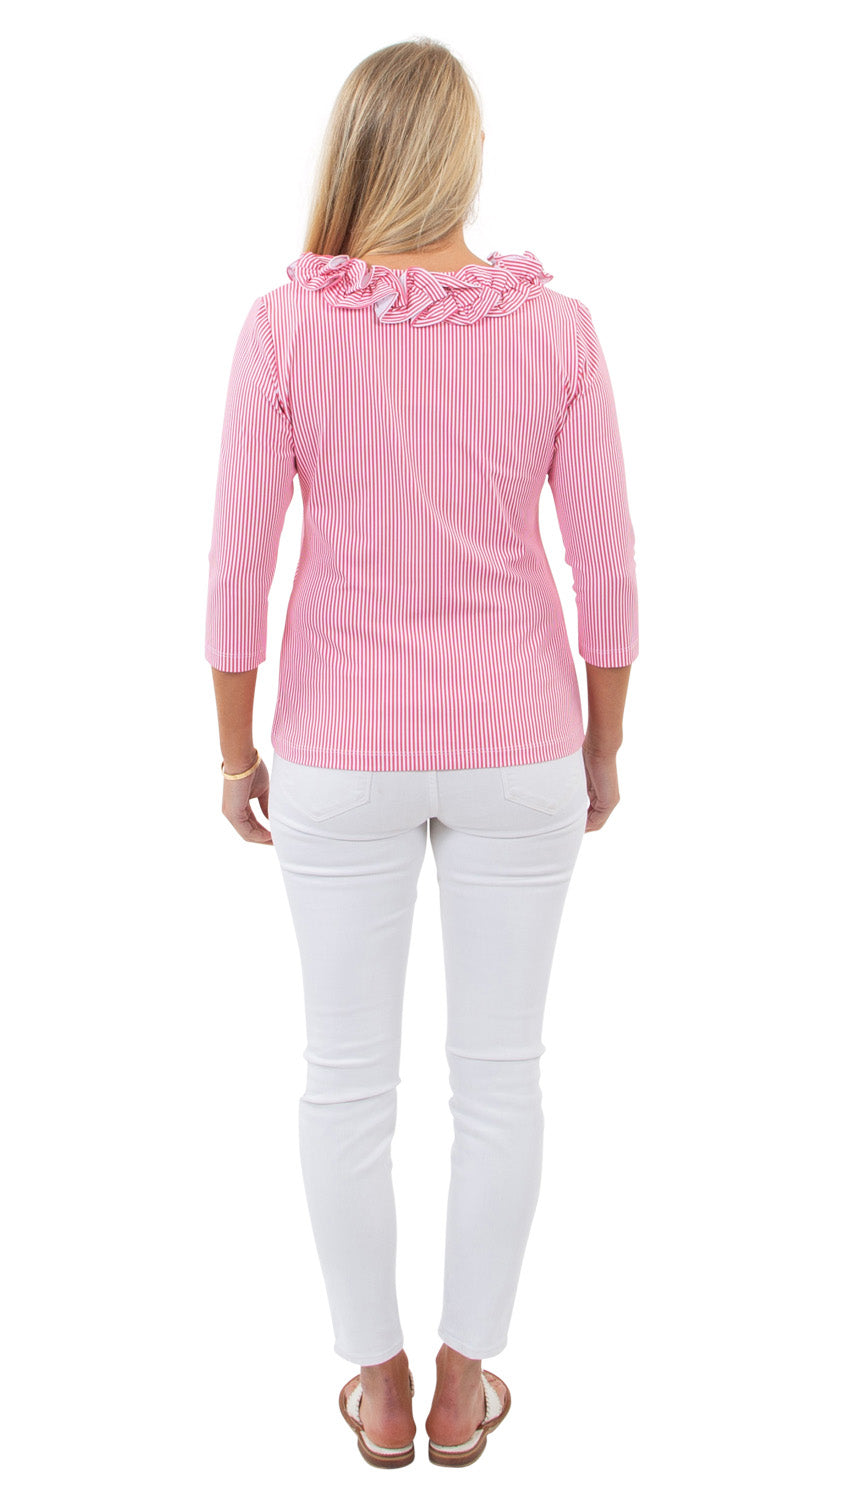 Cricket Top - Hot Pink Pinstripe